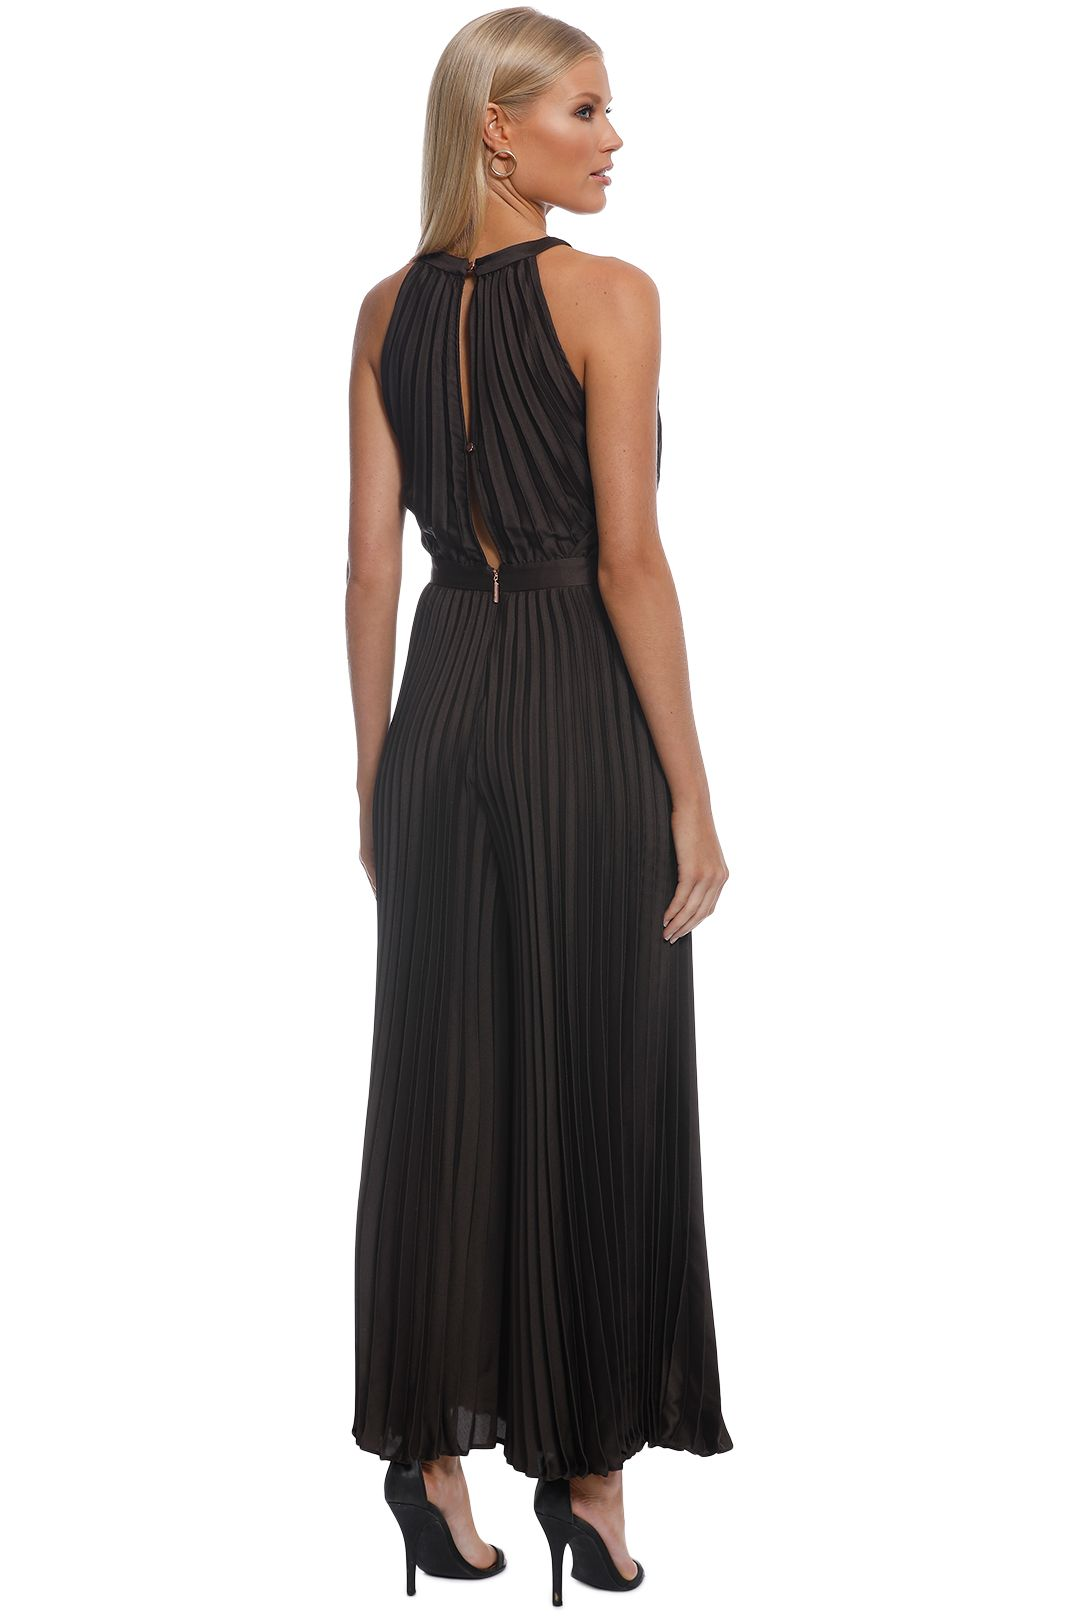 Ginger and Smart - Depth Pleat Jumpsuit - Black - Back